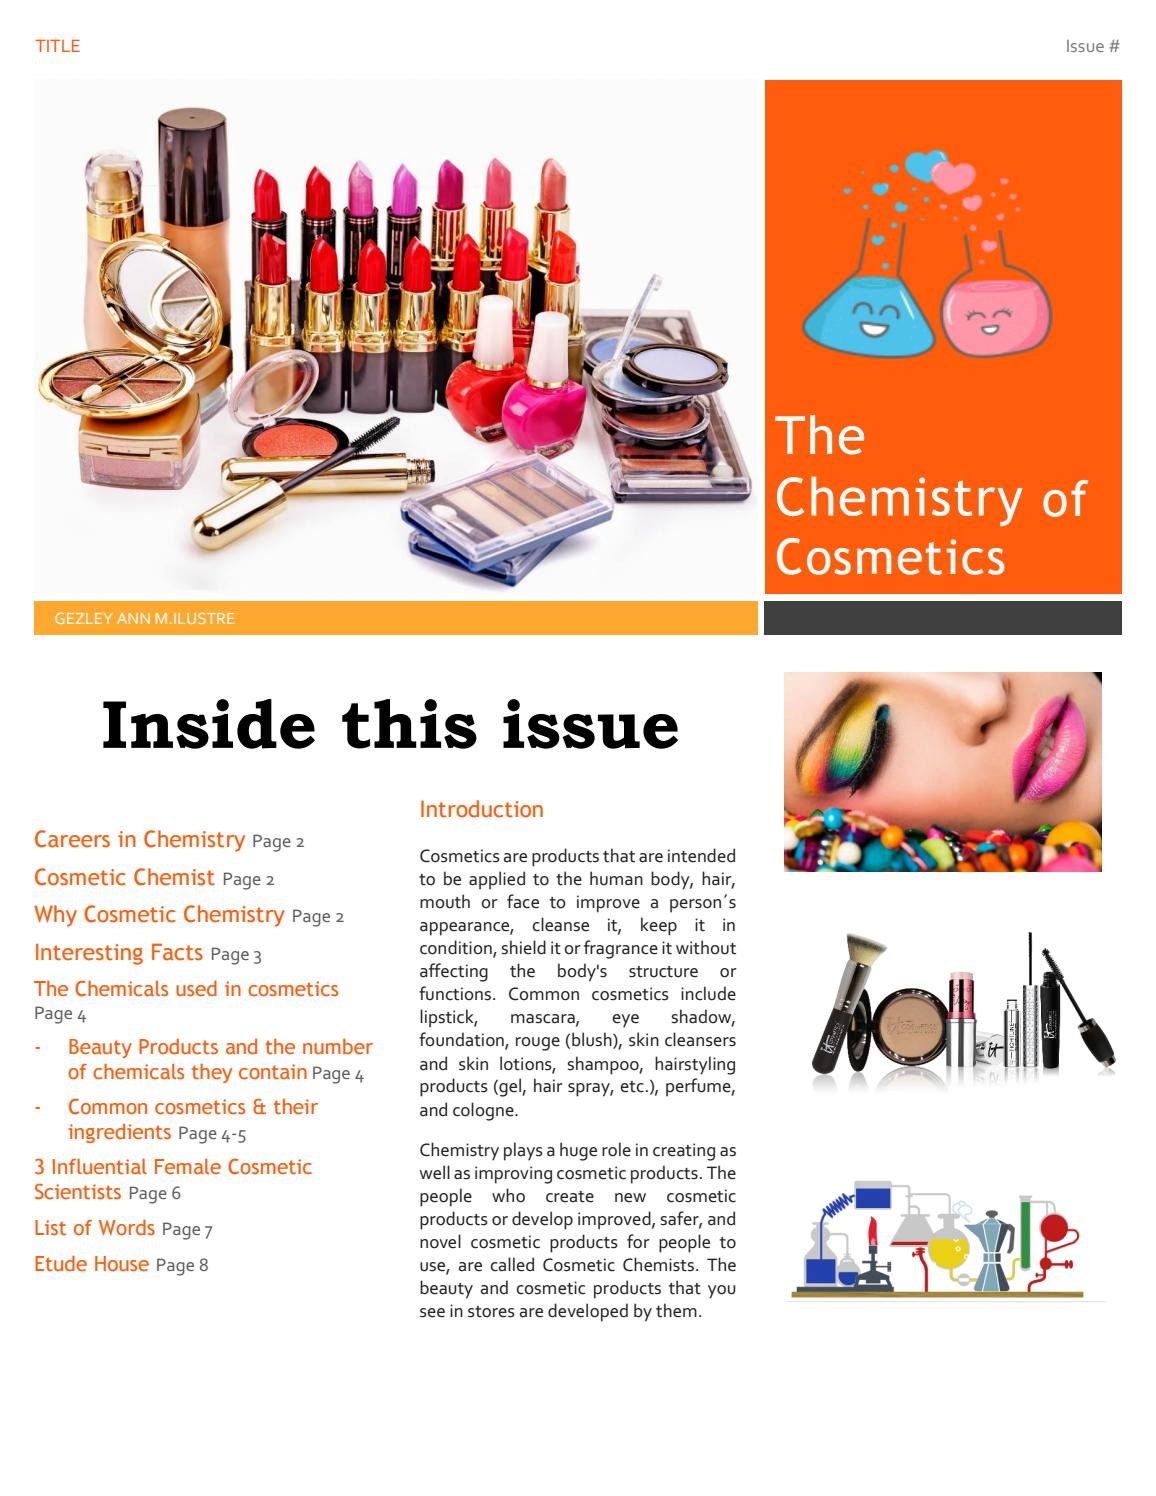 cosmetics in chemistry The chemistry of foundation makeup by: hannah vanderbilt foundation makeup is used almost everyday by thousands of girls around the world foundation is a skin colored cosmetic used on the face and surrounding areas to create an even skin tone and cover flaws.